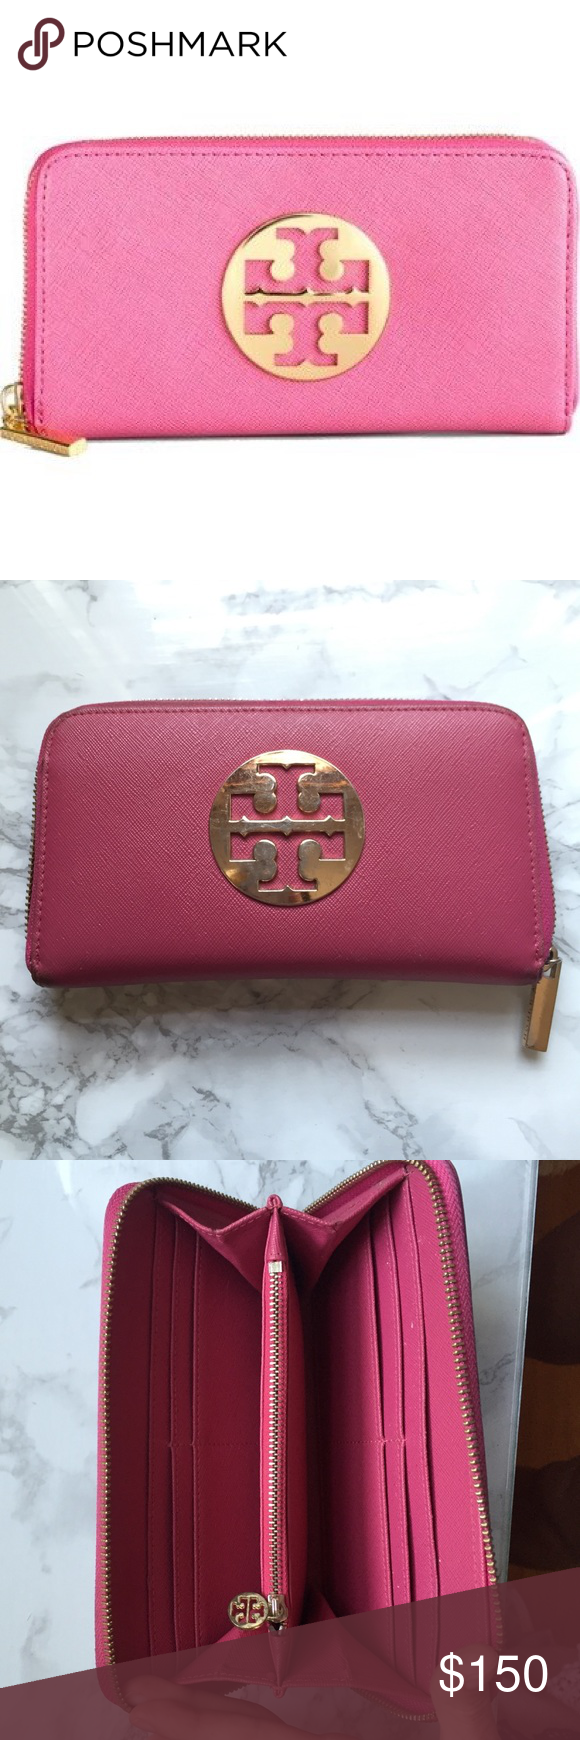 ‼️SALE-Tory Burch Continental Wallet *PLEASE READ BEFORE ASKING QUESTIONS* Inside is in very good condition however, on the outside there are scratches & wear on the logo as shown in pictures as well as some discoloration on the corners & zipper.  Authentic but bought online from another seller so no proof of authenticity! No trades 💕 Tory Burch Bags Wallets